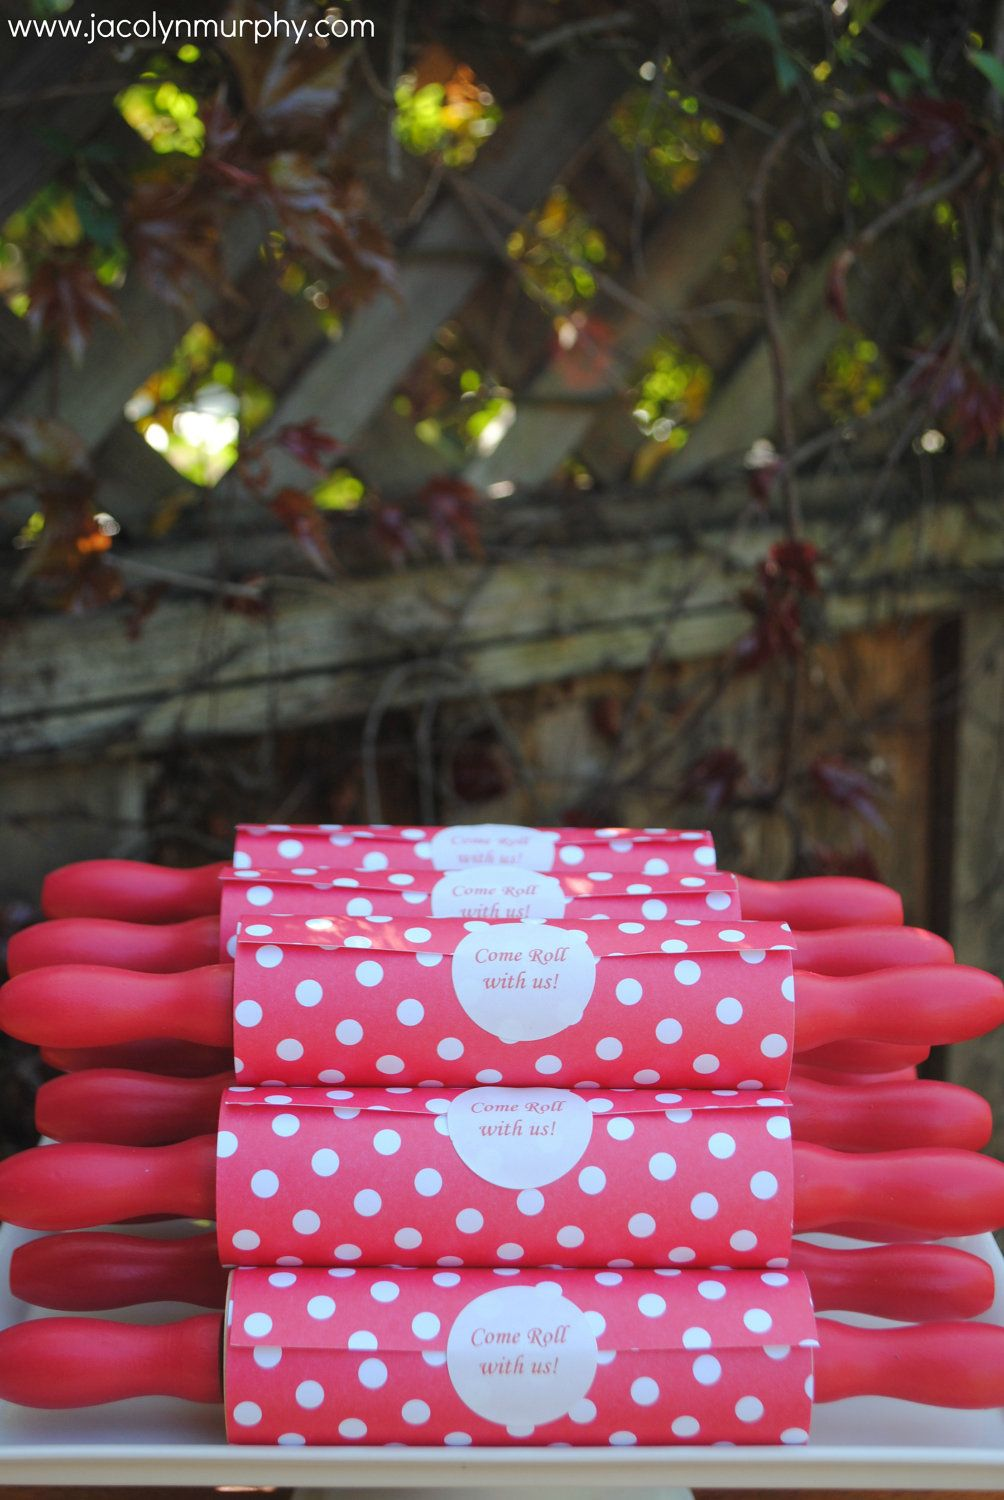 Mini Rolling Pin Cooking Party Invitations for my kids – Kids Cooking Party Invitations